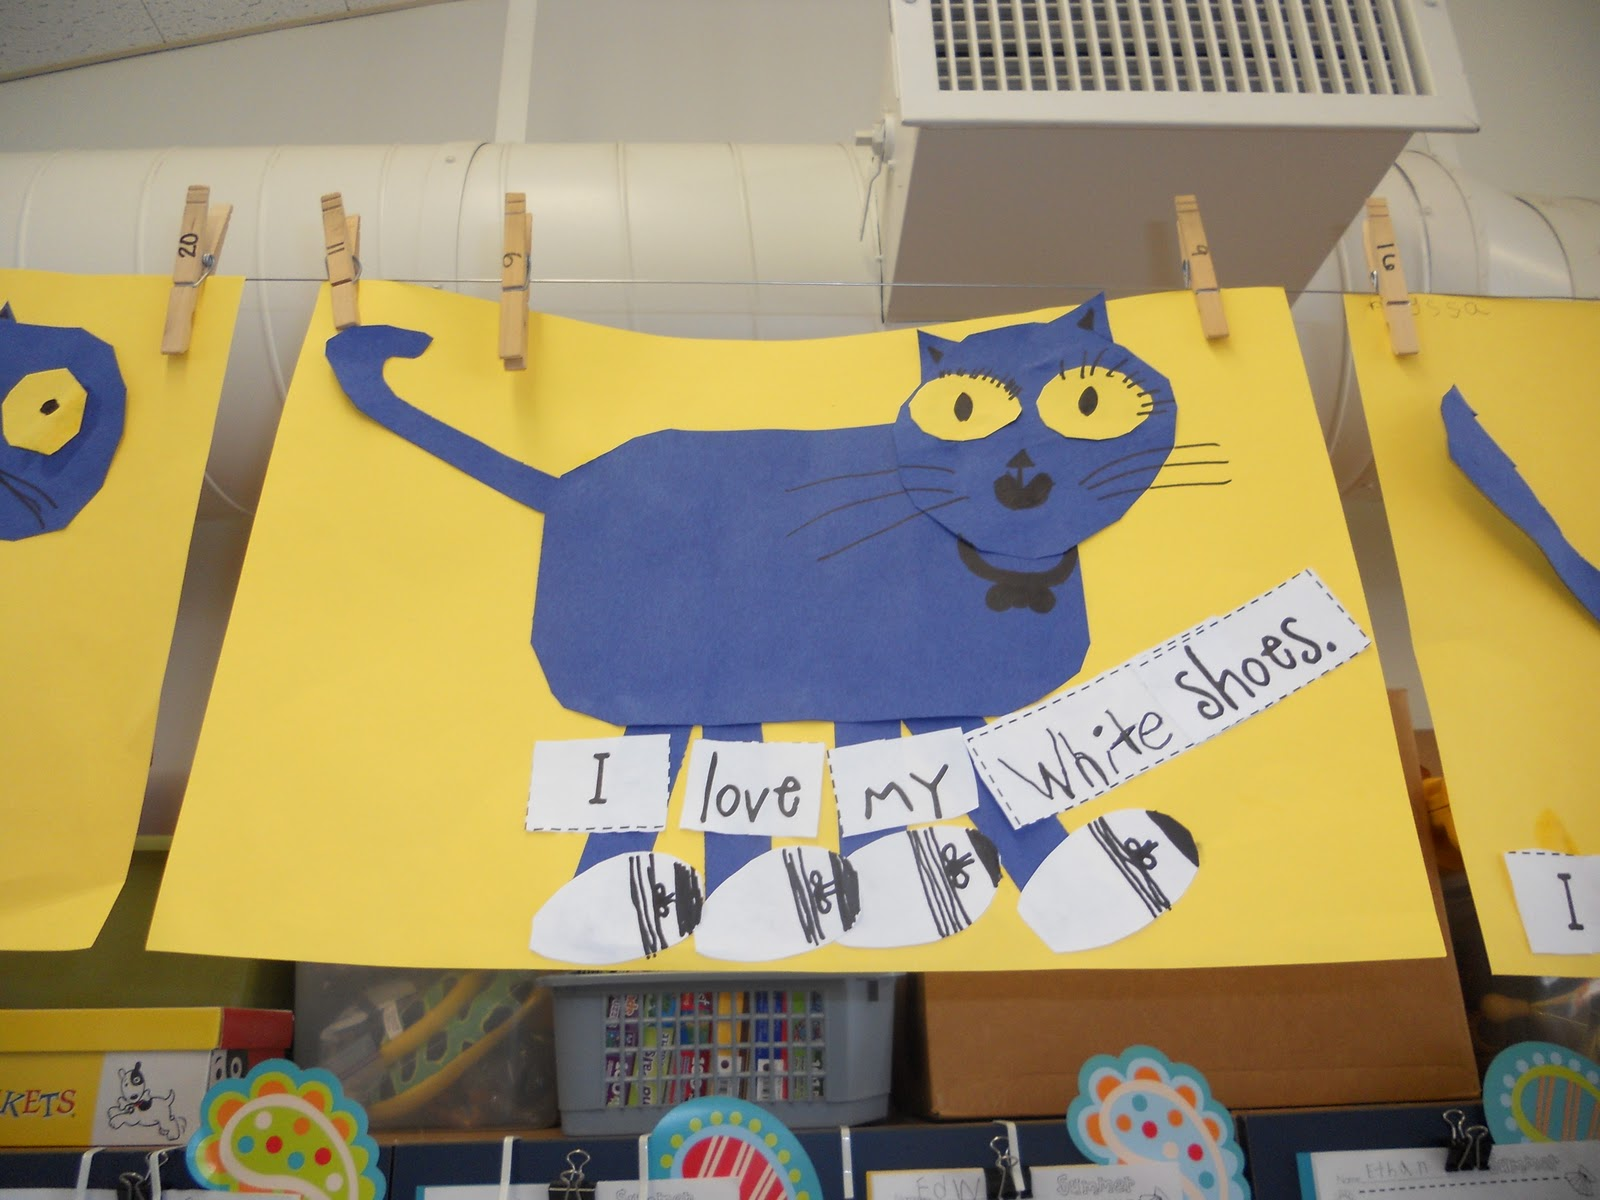 Teacher Bits and Bobs: I heart Pete the Cat!